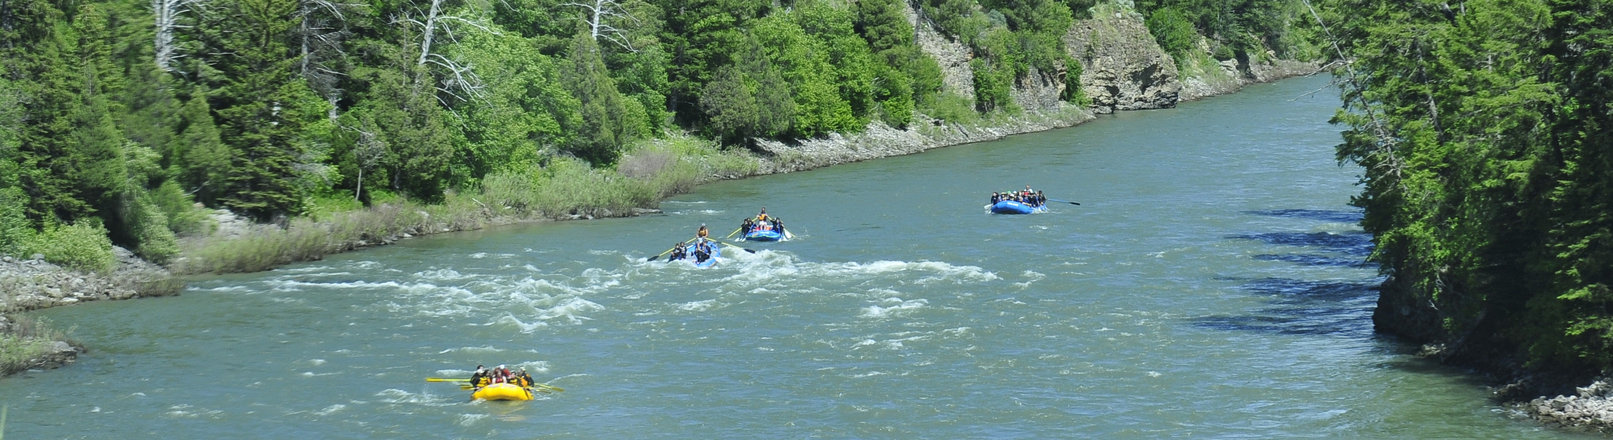 Rafting on Snake River